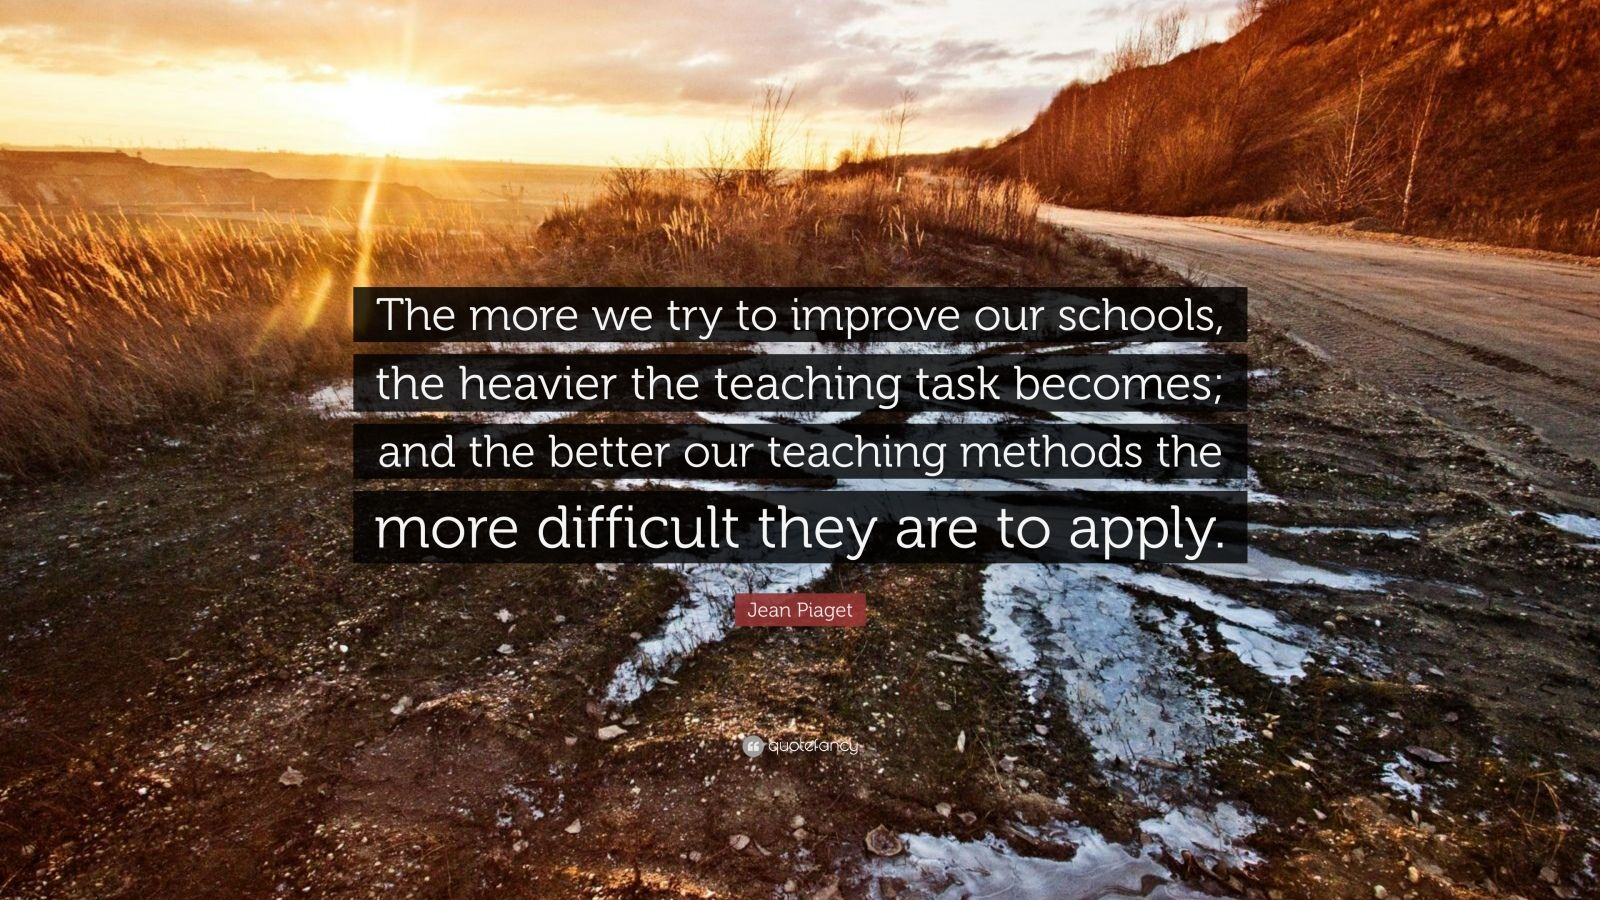 """Jean Piaget Quote: """"The more we try to improve our schools, the heavier the teaching task becomes; and the better our teaching methods the more difficult they are to apply."""""""